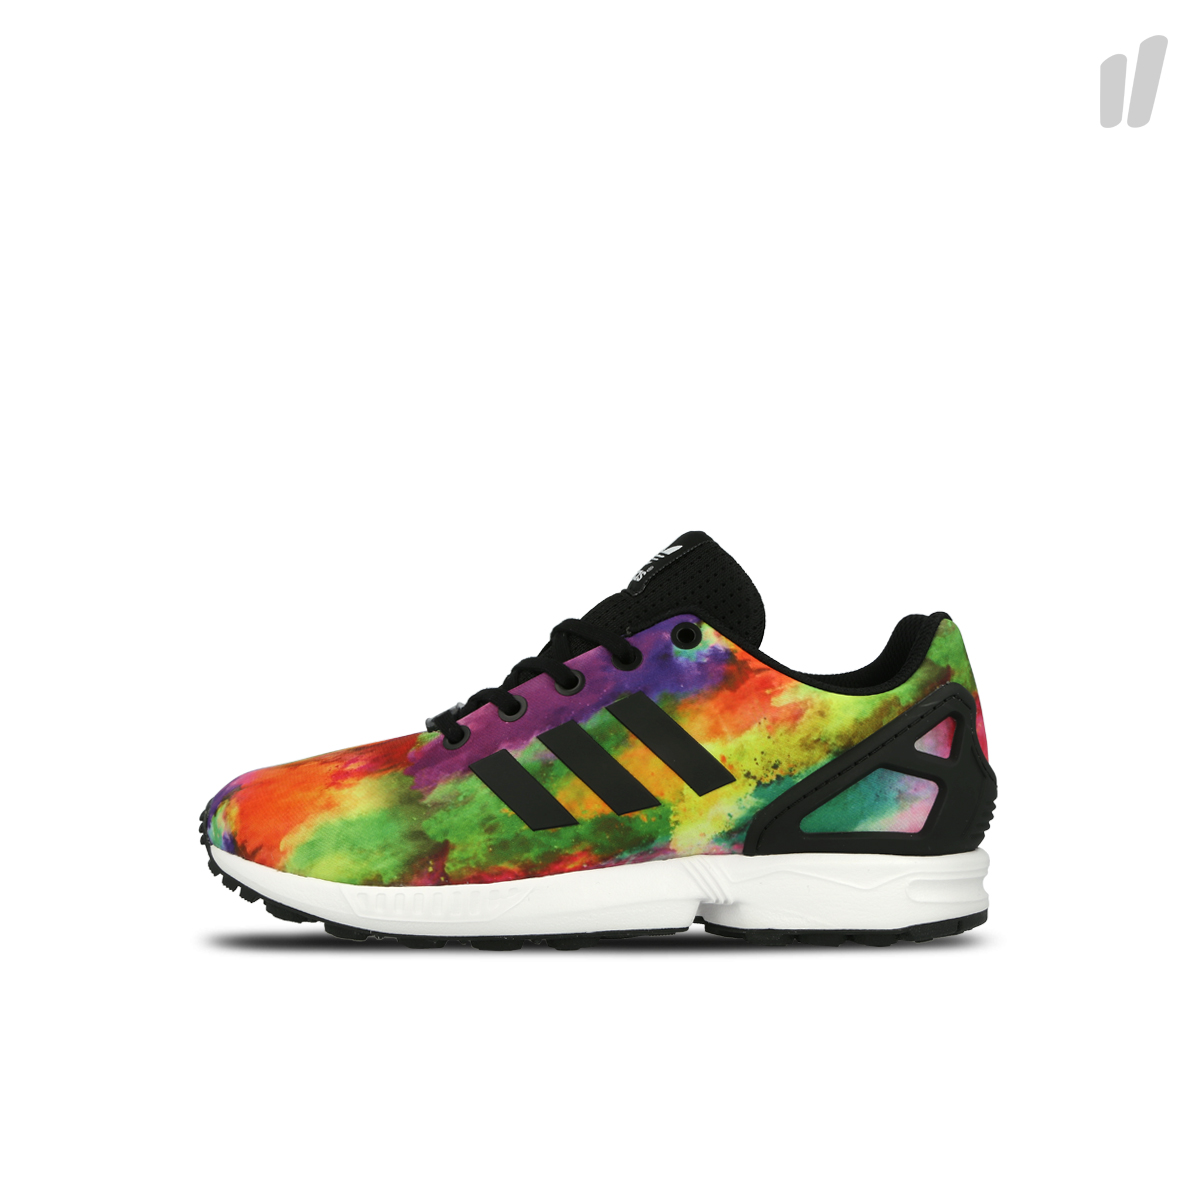 New Adidas Shoes Colorful